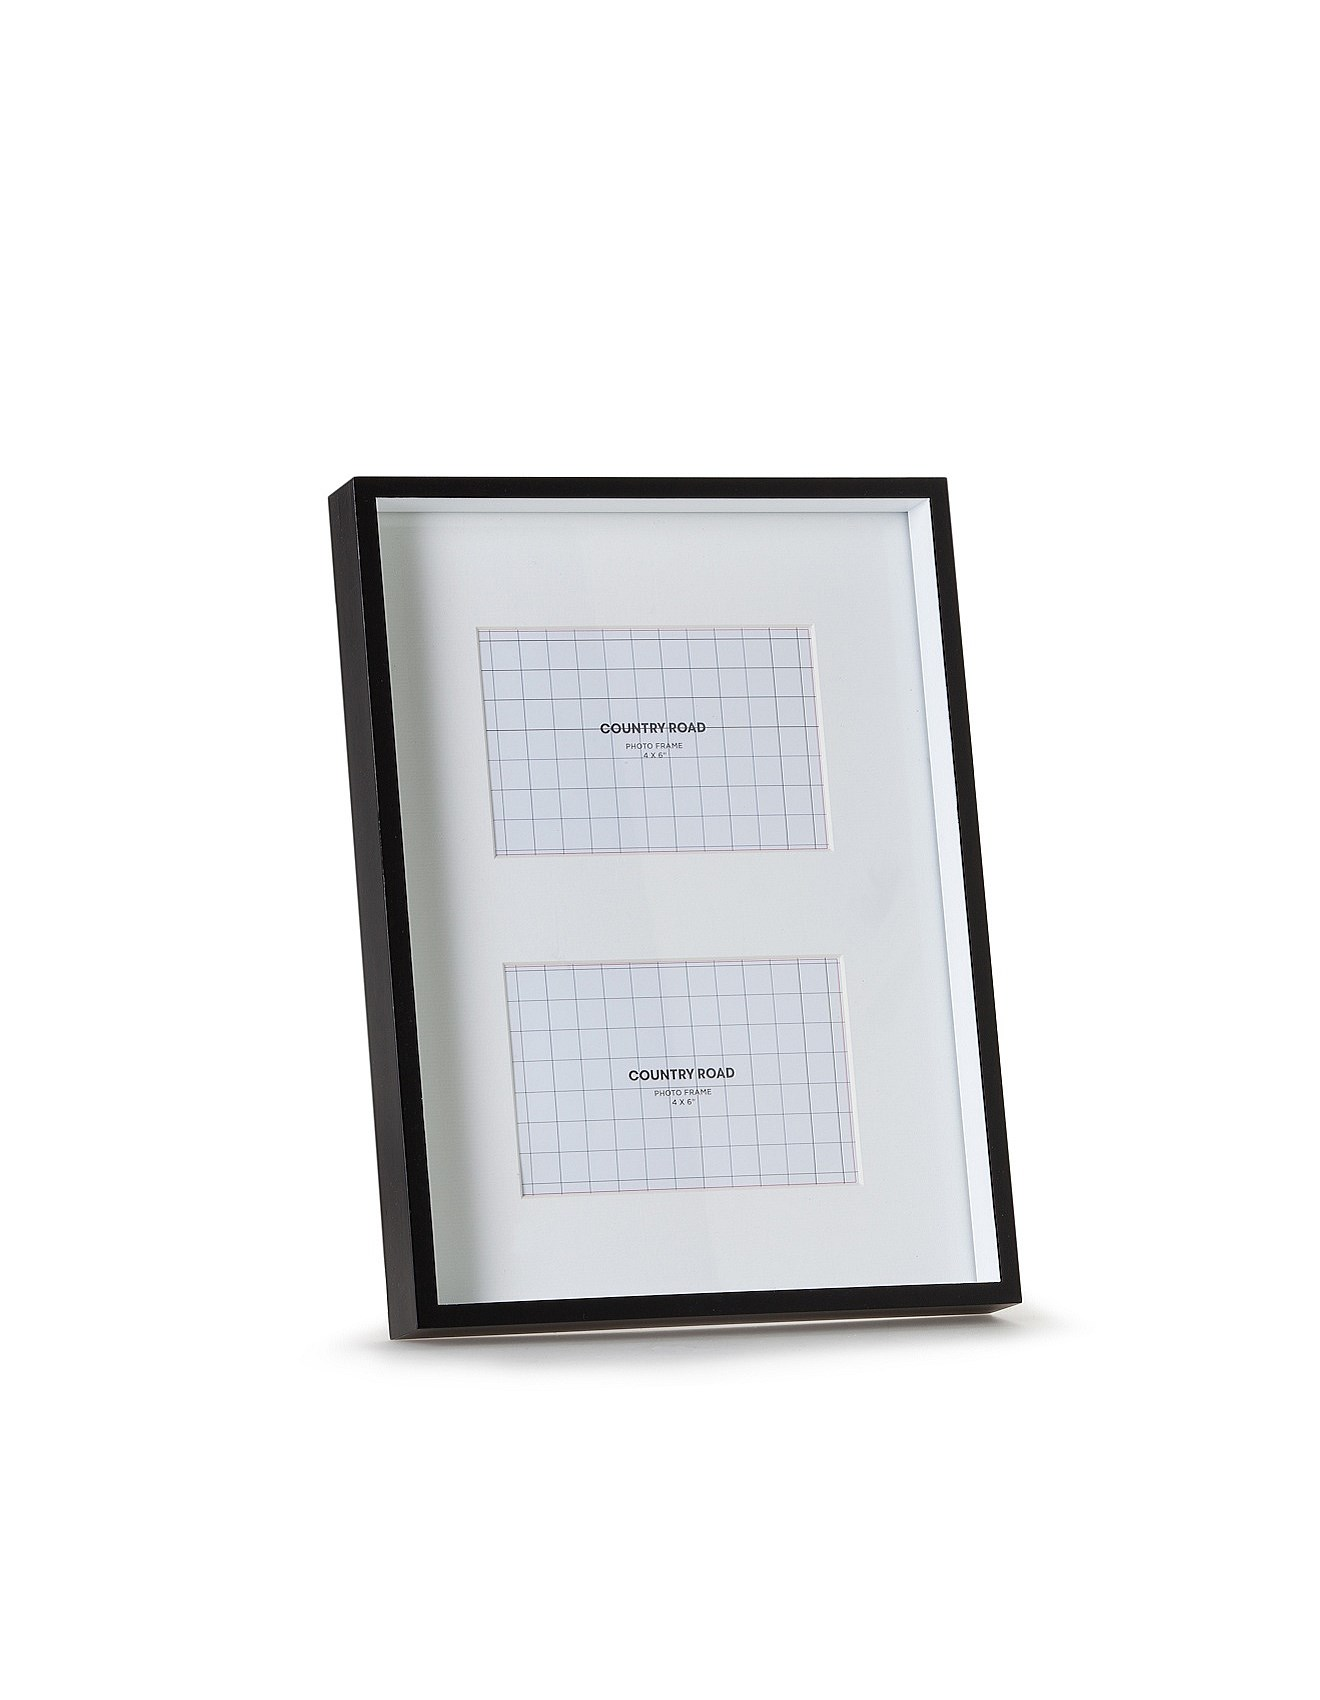 Buy Picture Frames Photo Frames Buy Picture Frames Online David Jones